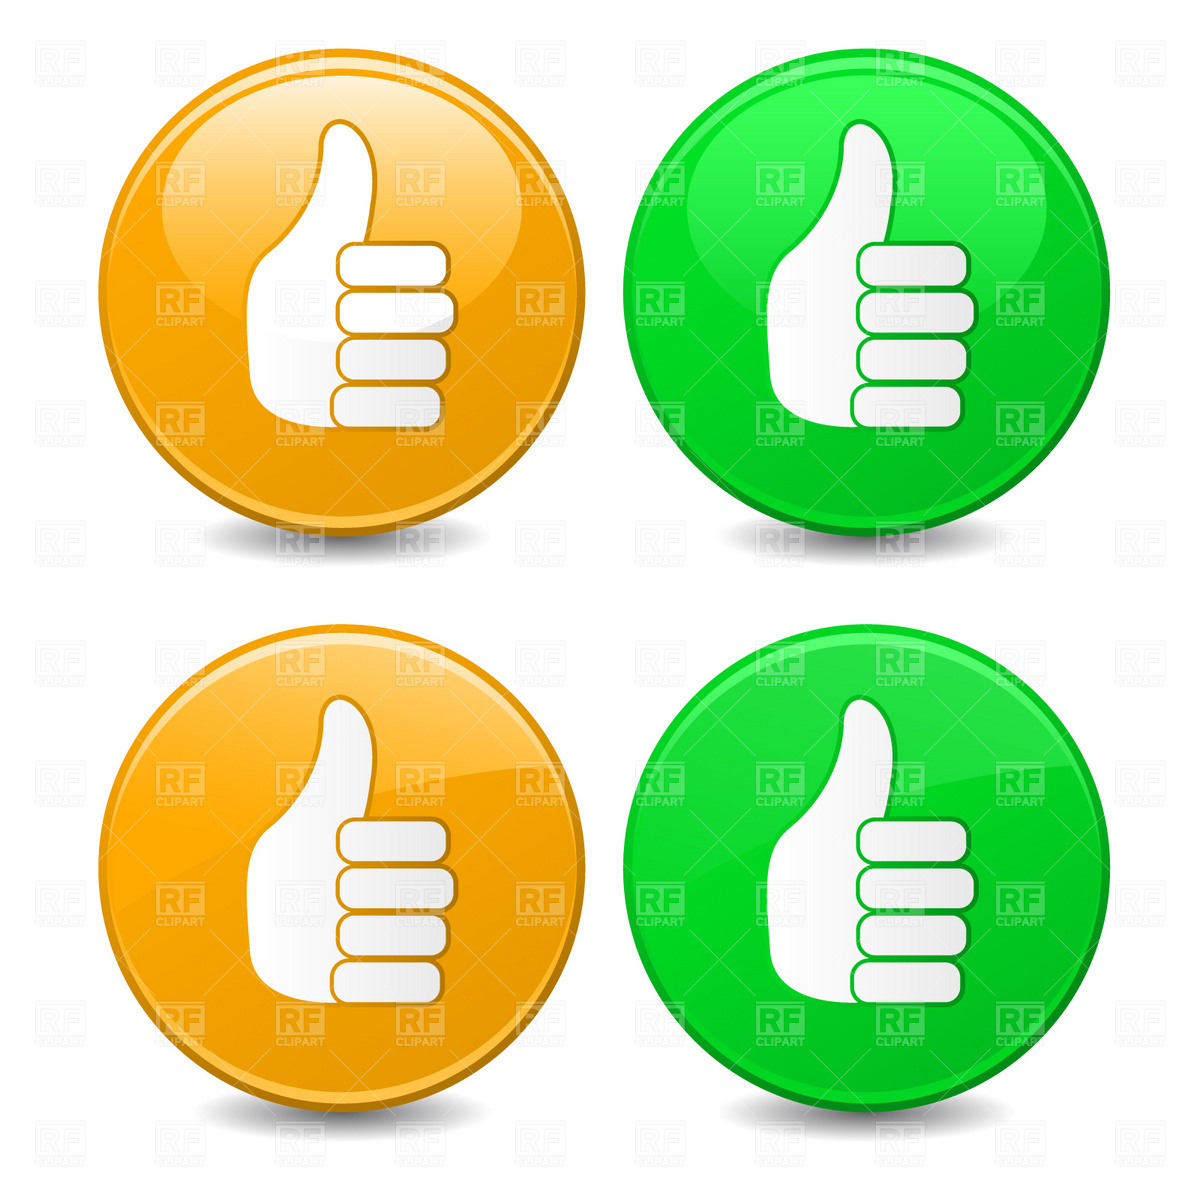 Thumbs up sign clipart jpg library download Thumbs Up Sign Clipart - Clipart Kid jpg library download